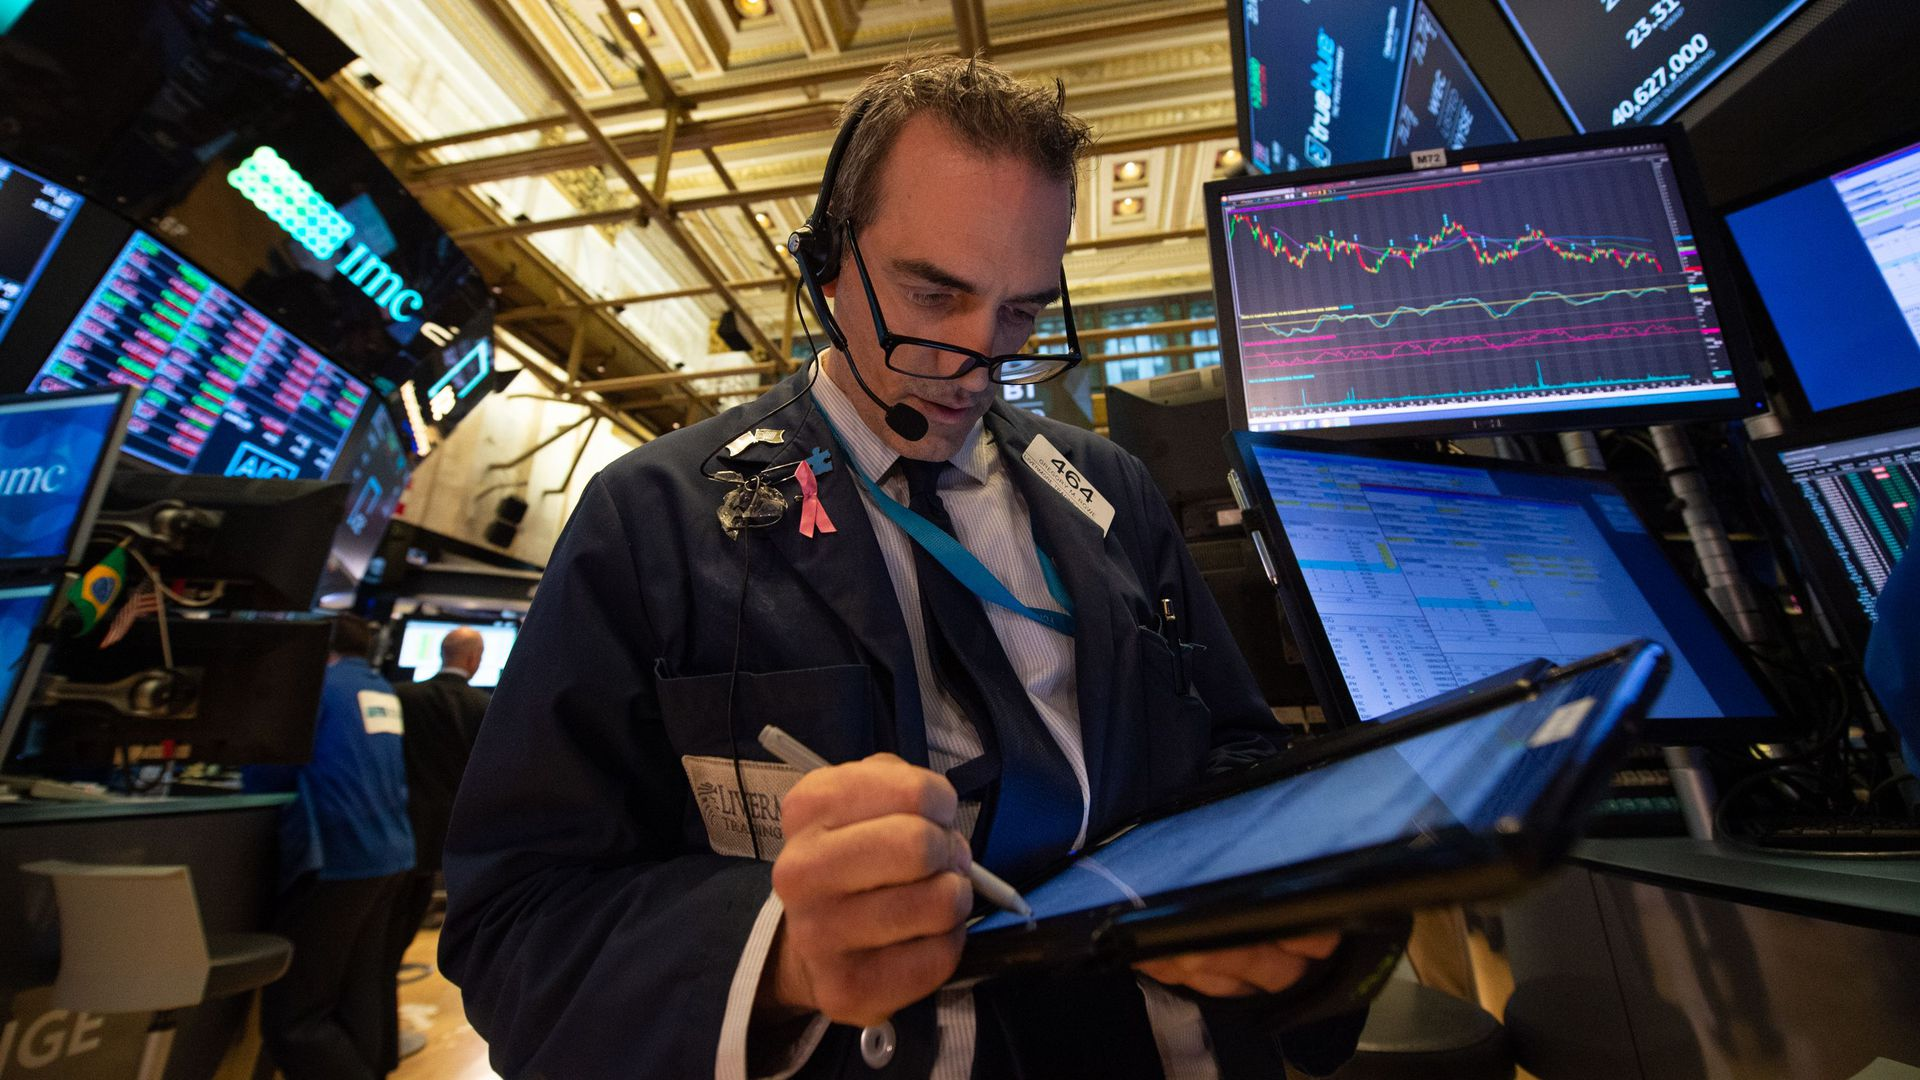 Trader on the floor of the new york stock exchange